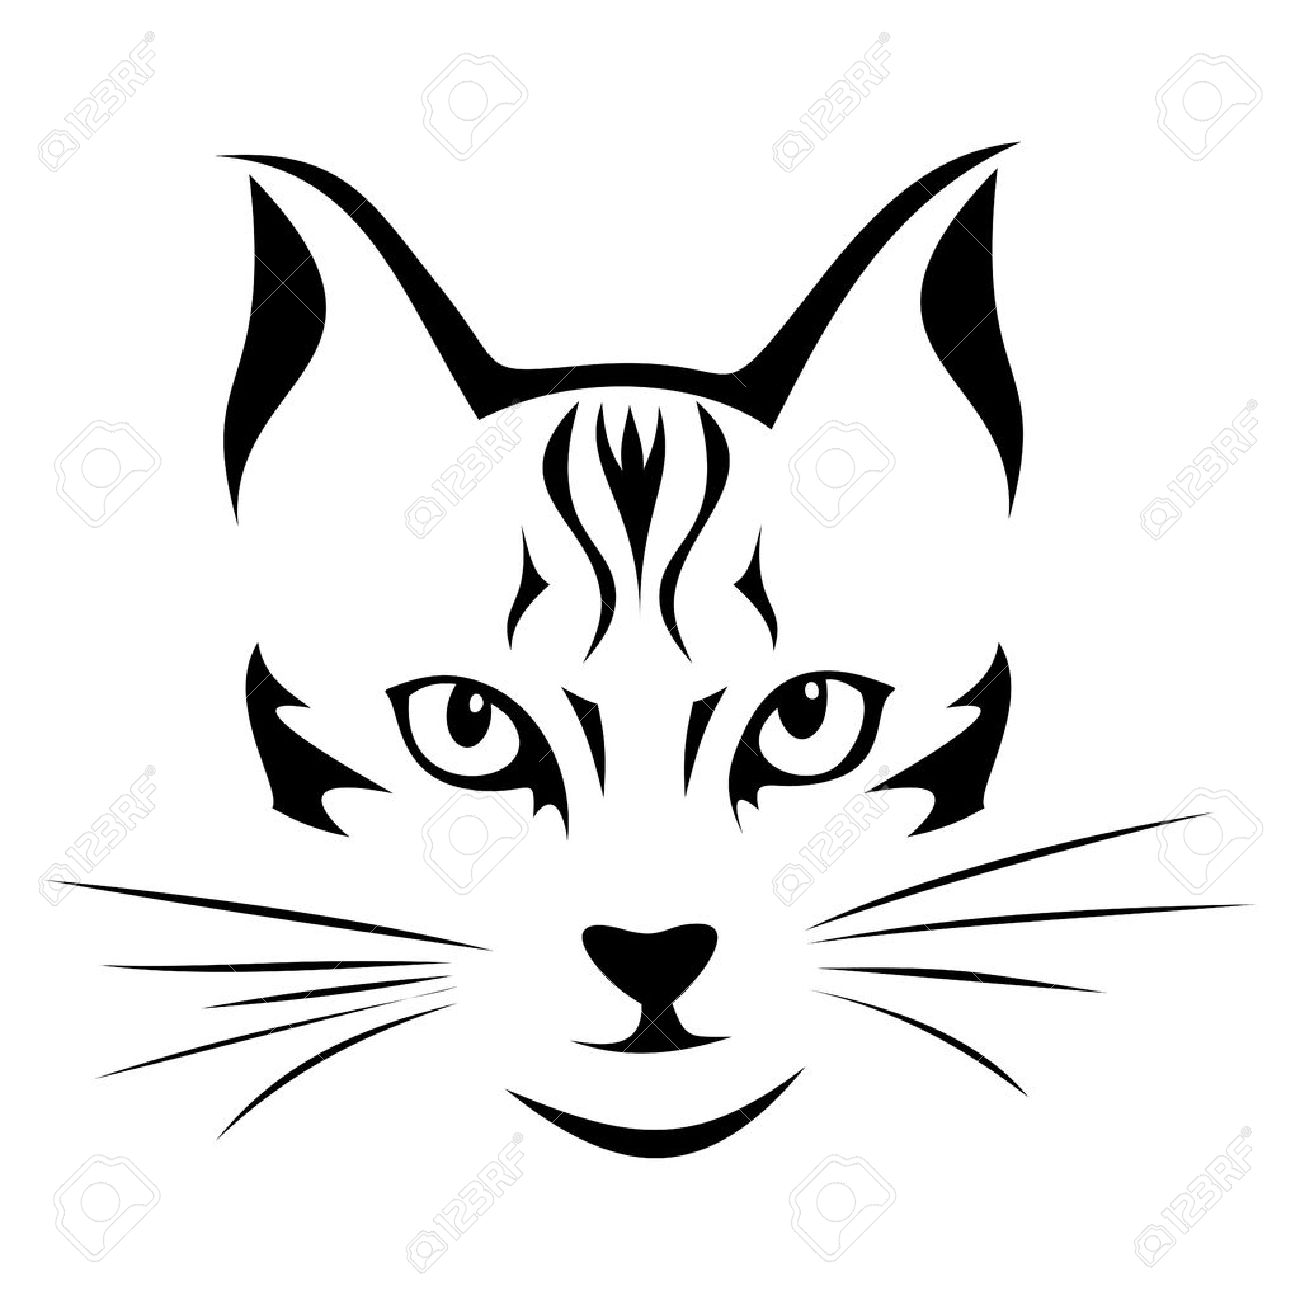 Black Silhouette Of Cat Vector Illustration Royalty Free Cliparts Jpg 1300x1300 Ears